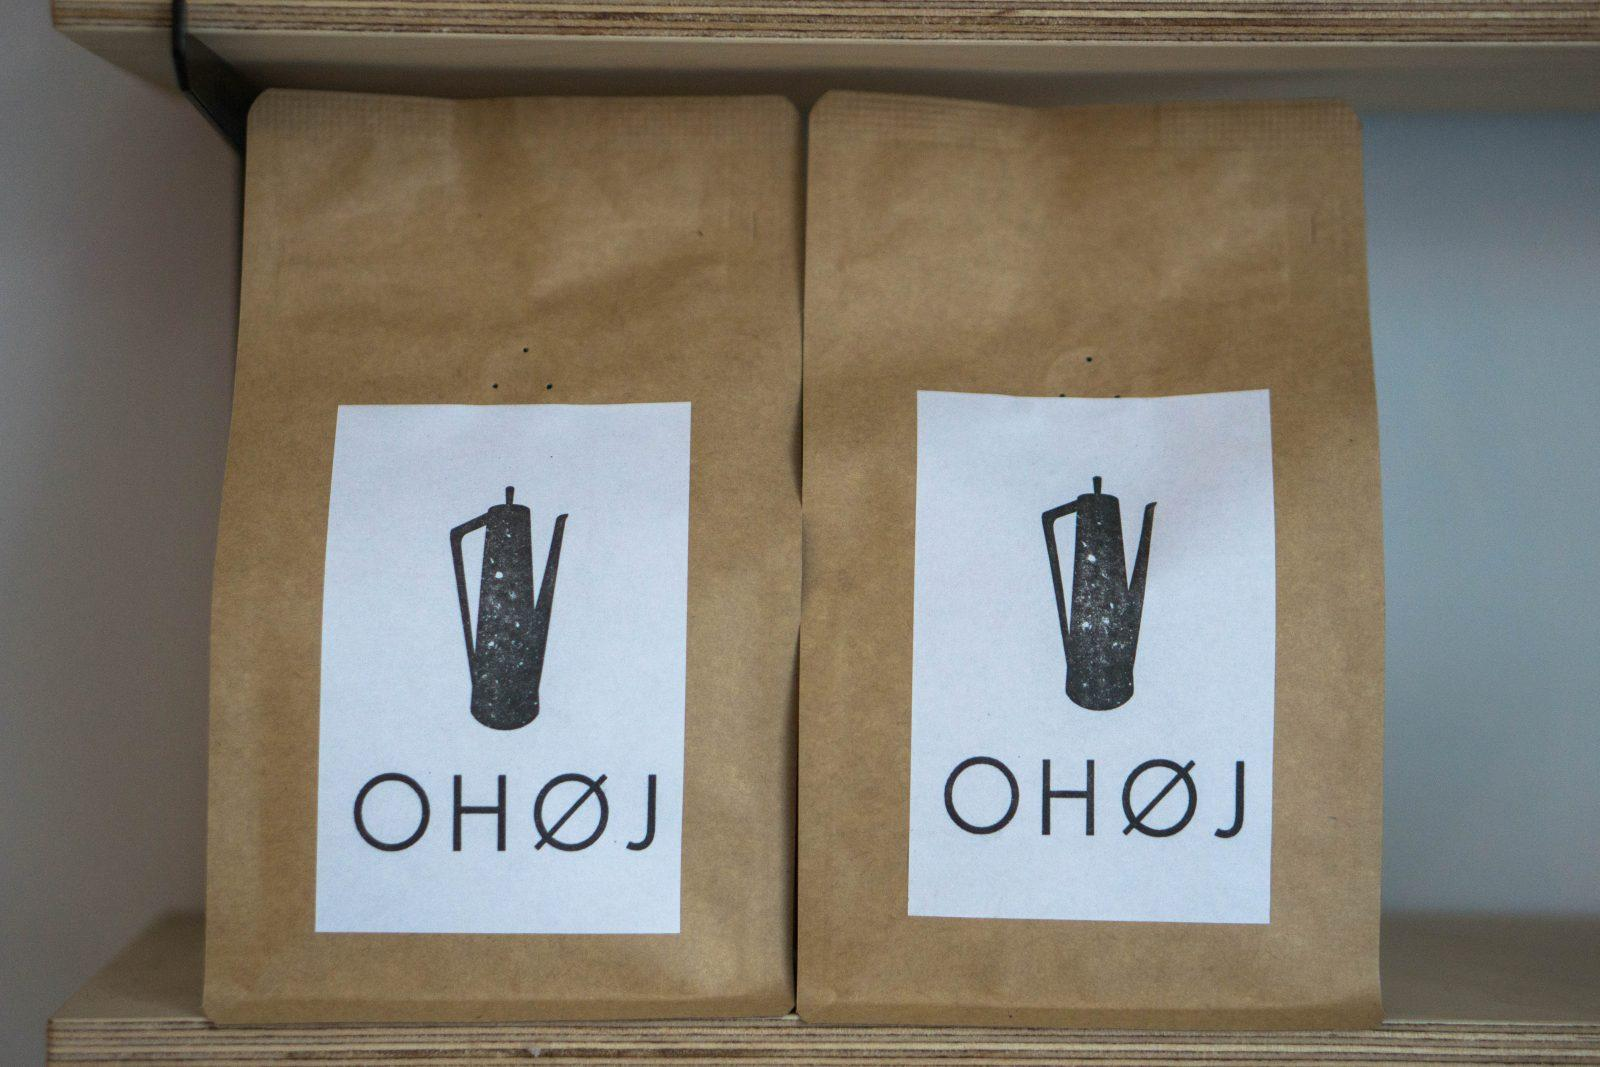 Coffees for purchase